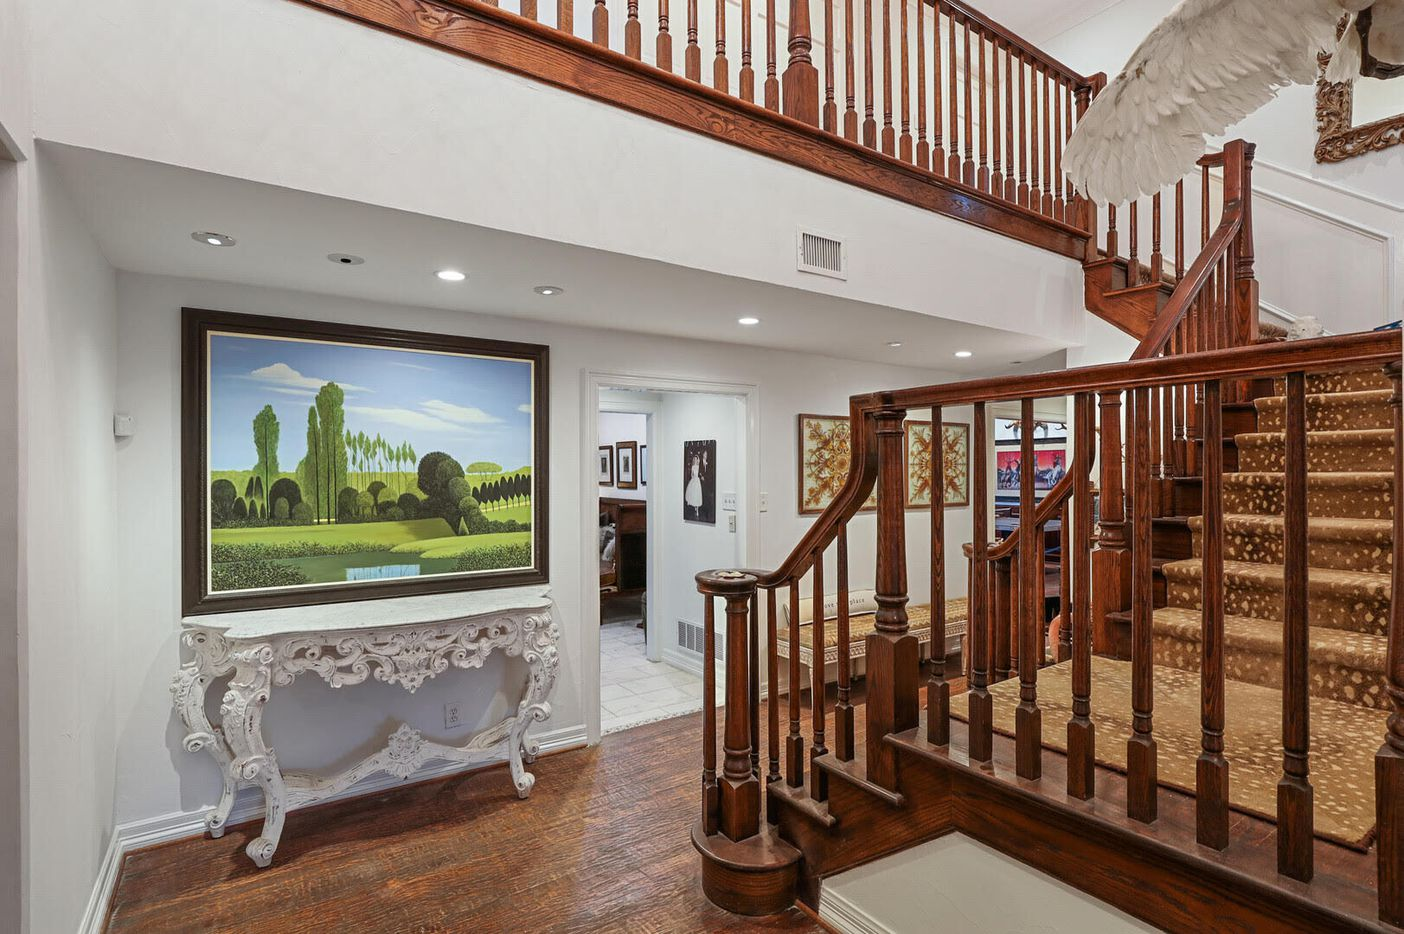 Take a look at the home at 3102 St. Johns Drive in Highland Park.